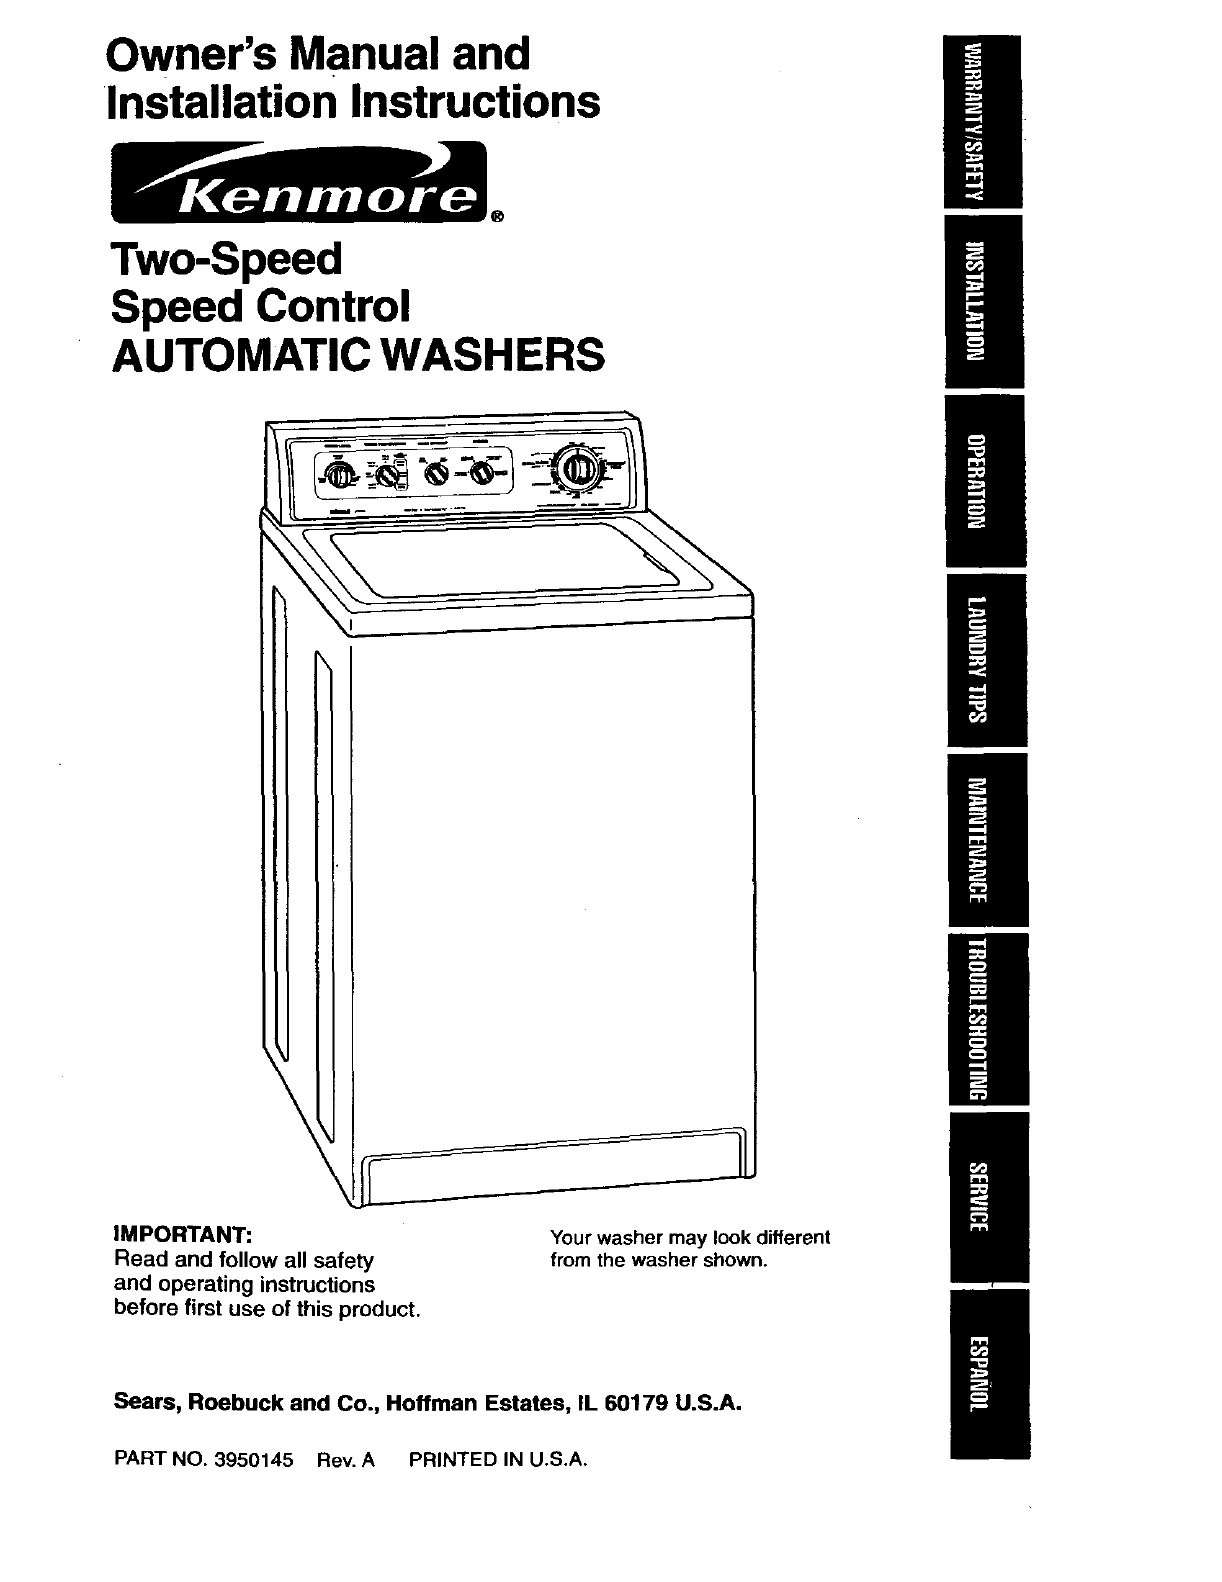 Outstanding Kenmore Washing Machine Parts Diagram Pictures - Best ...